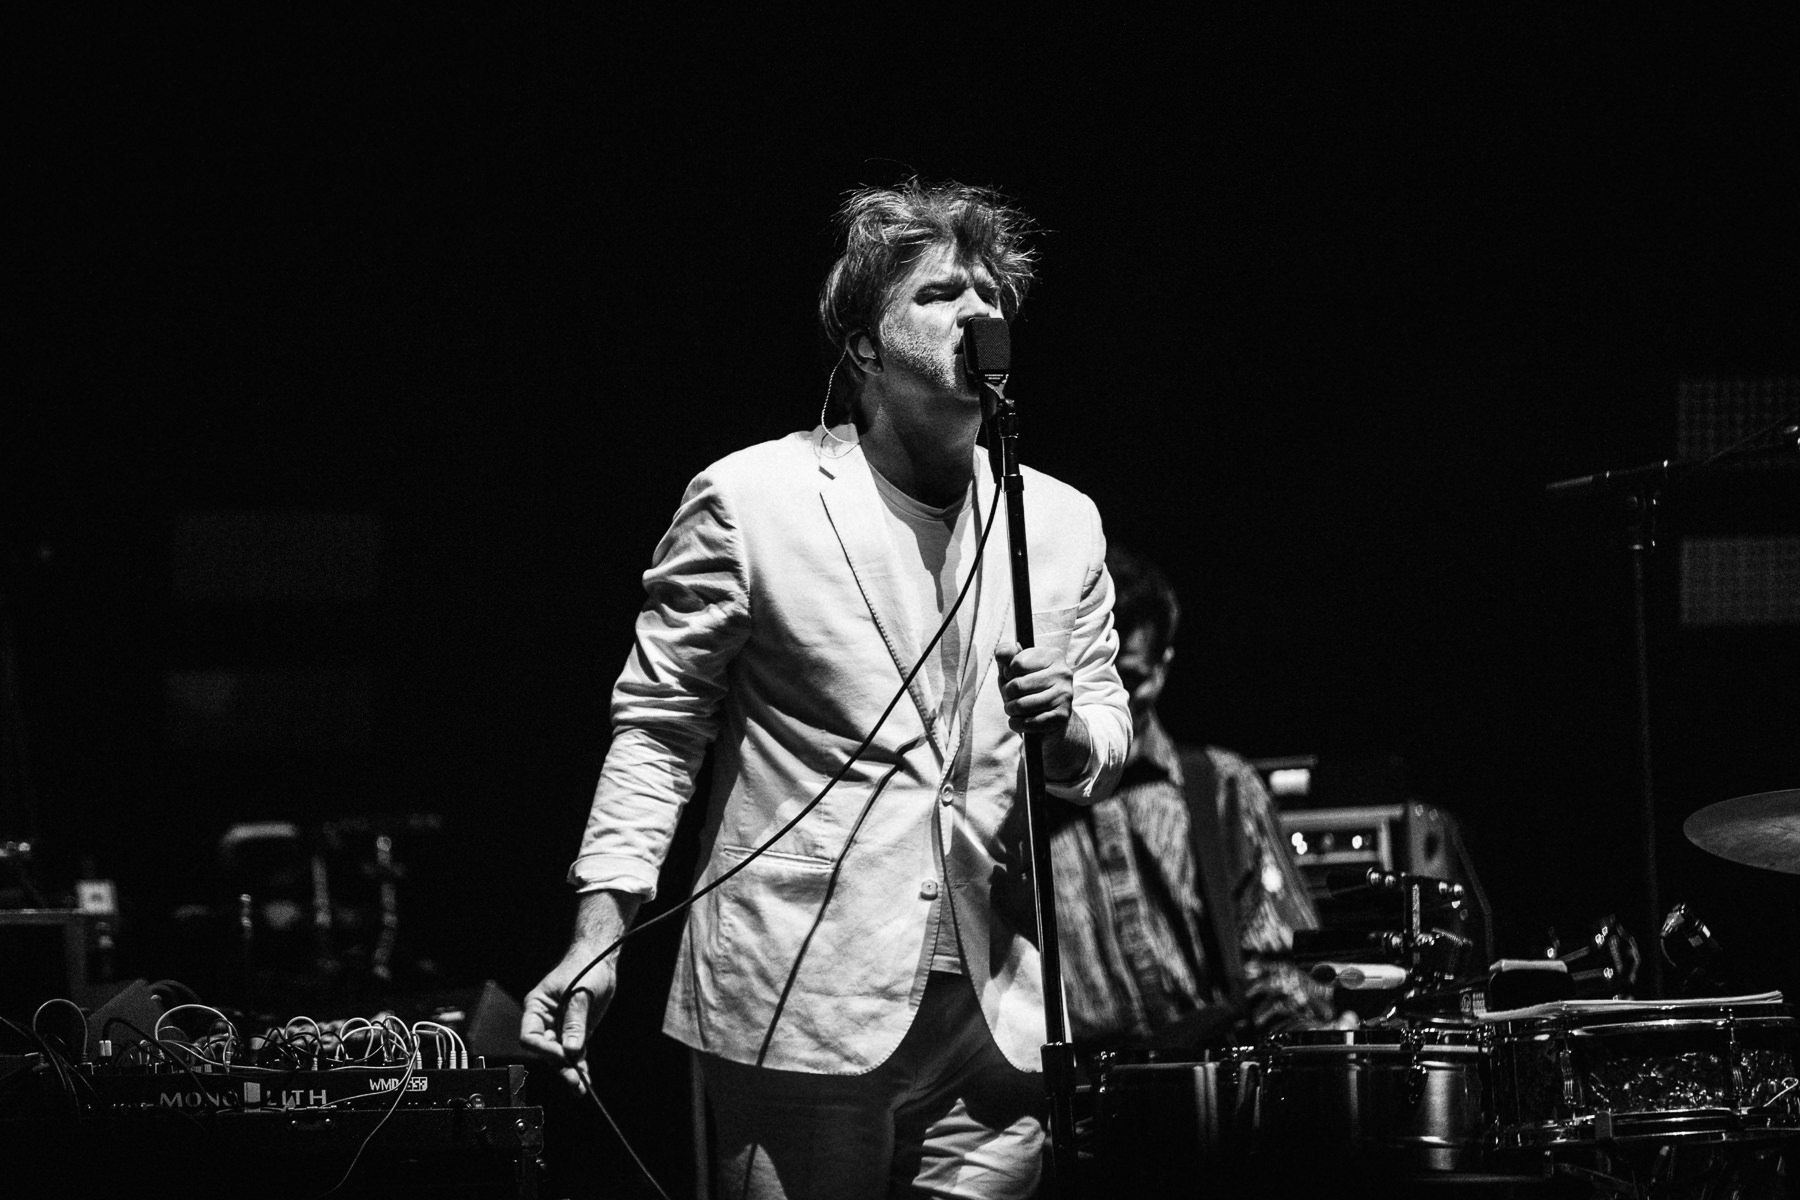 180506-kirby-gladstein-photograpy-LCD-Soundsystem-Hollywood-Bowl-LA-7528.jpg